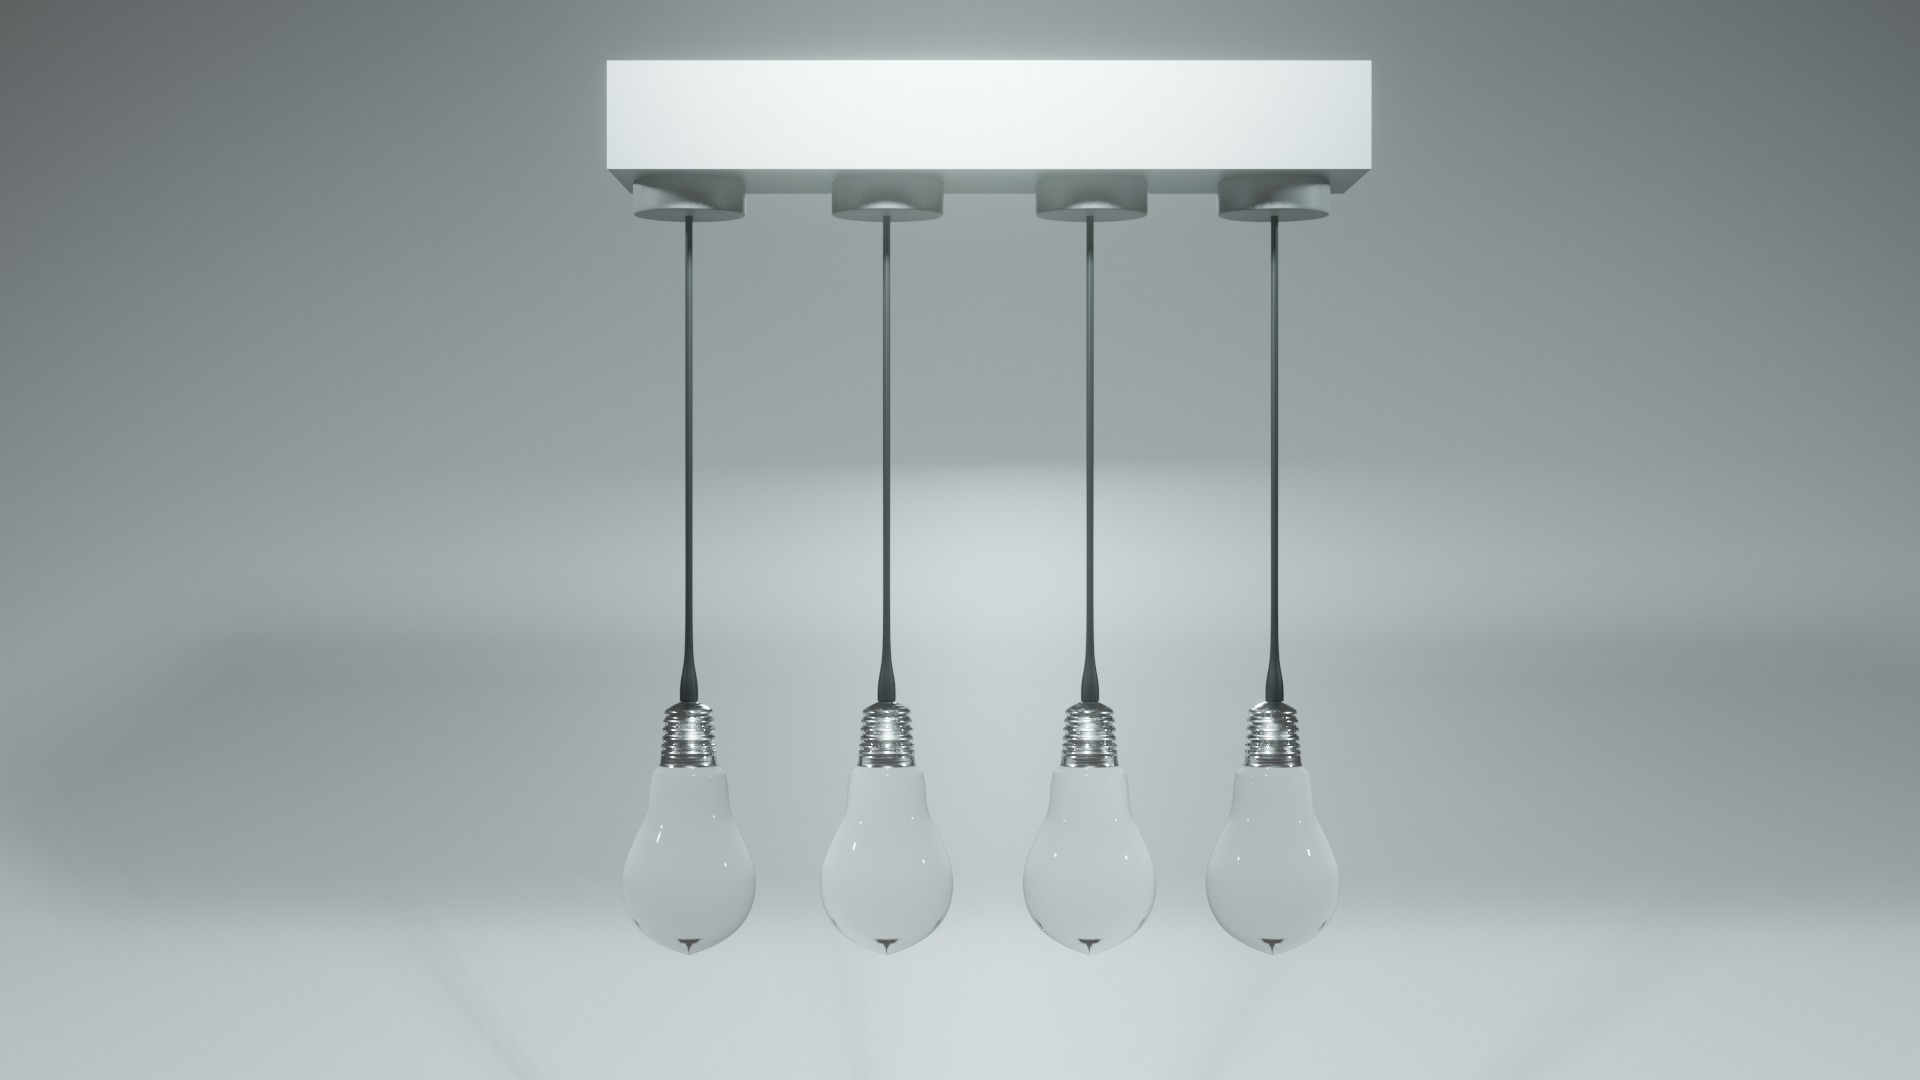 Modern Lamp (photorealistic) preview image 1